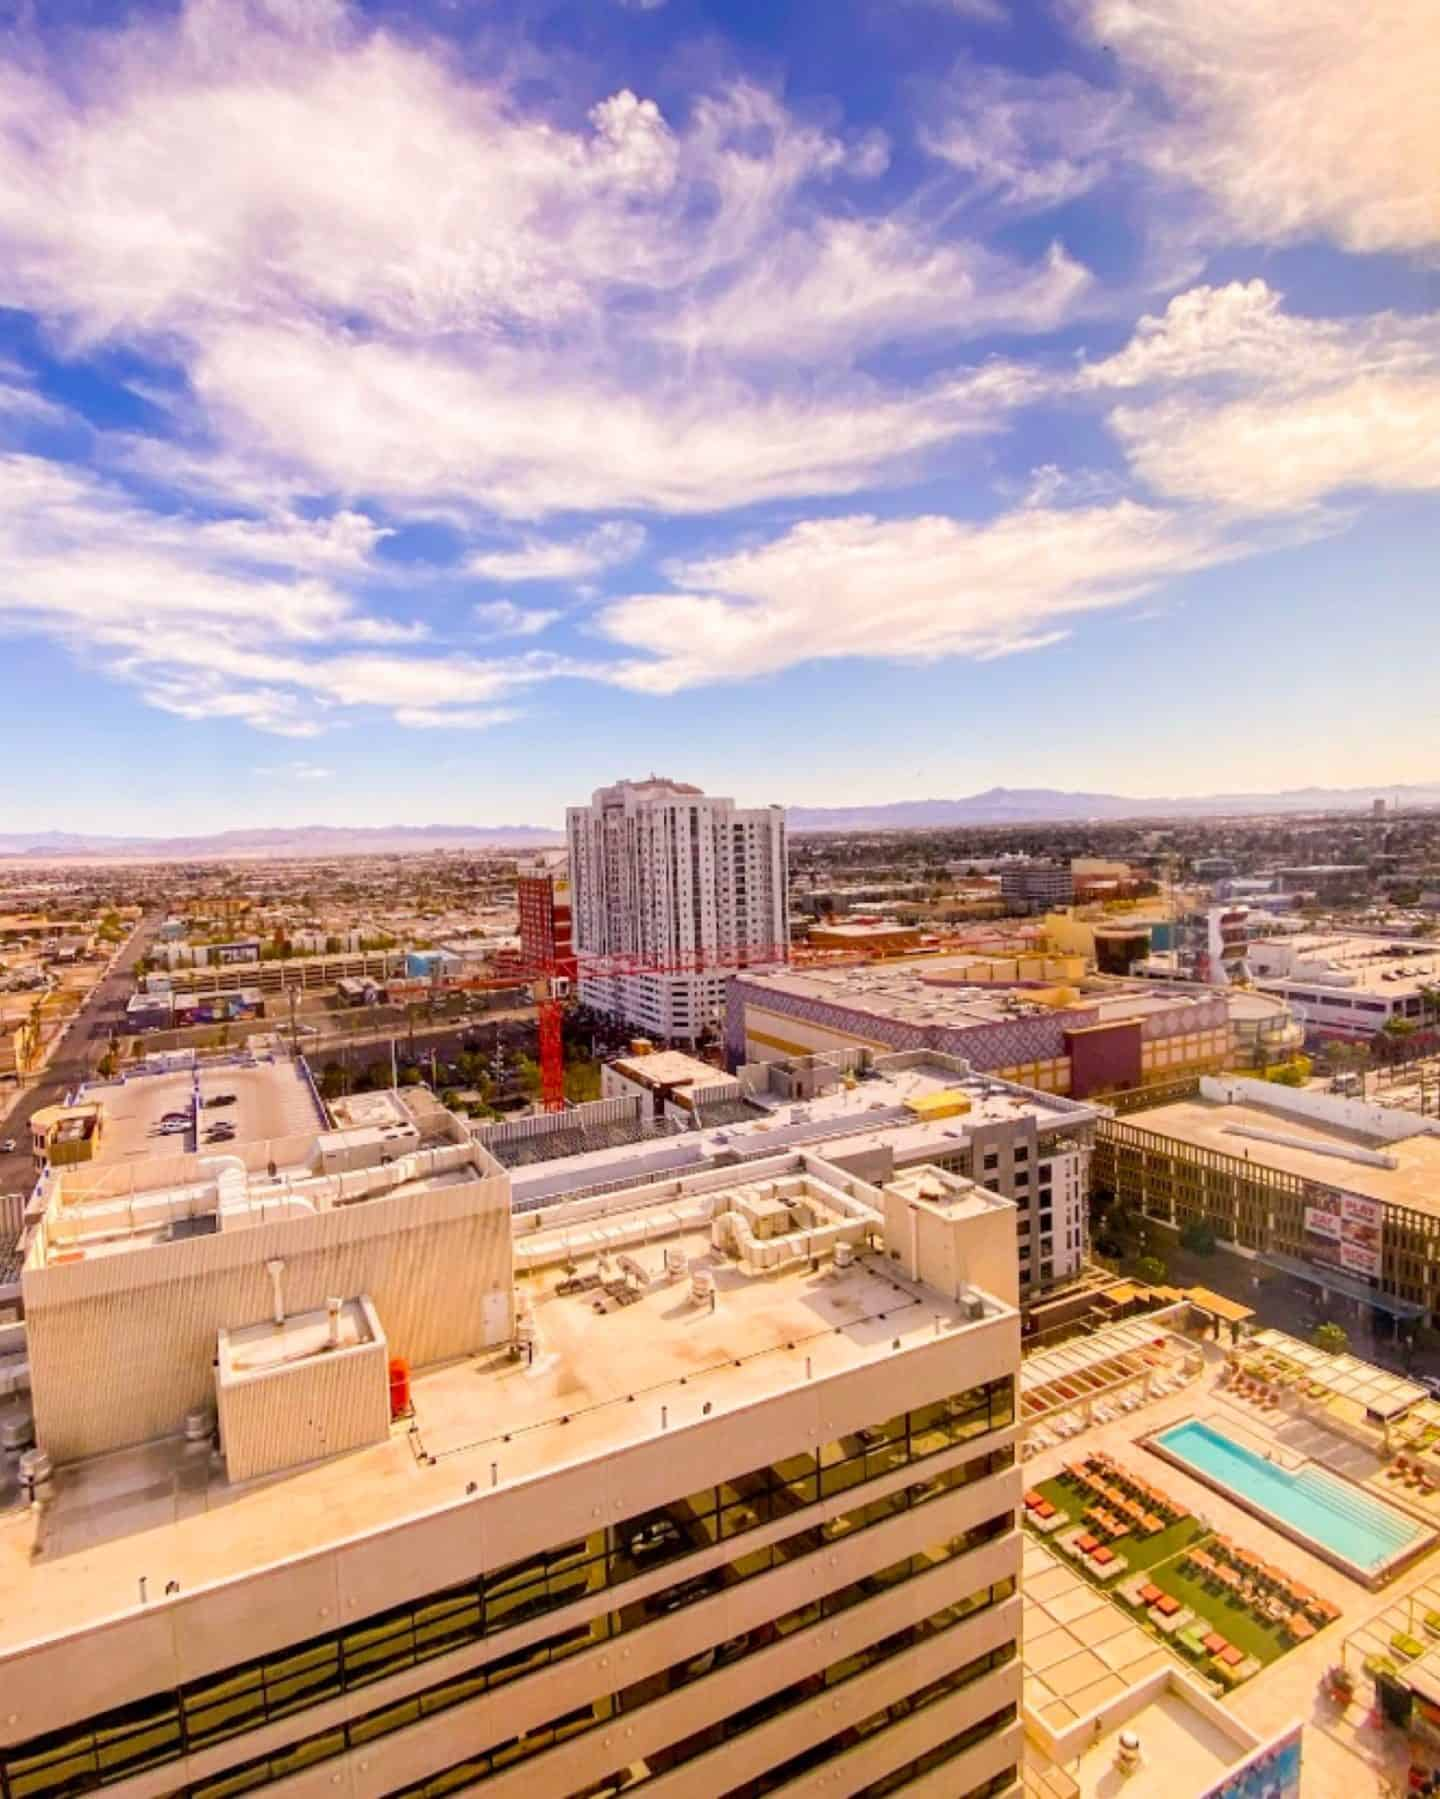 The Downtown Grand Las Vegas Rooftop Pool